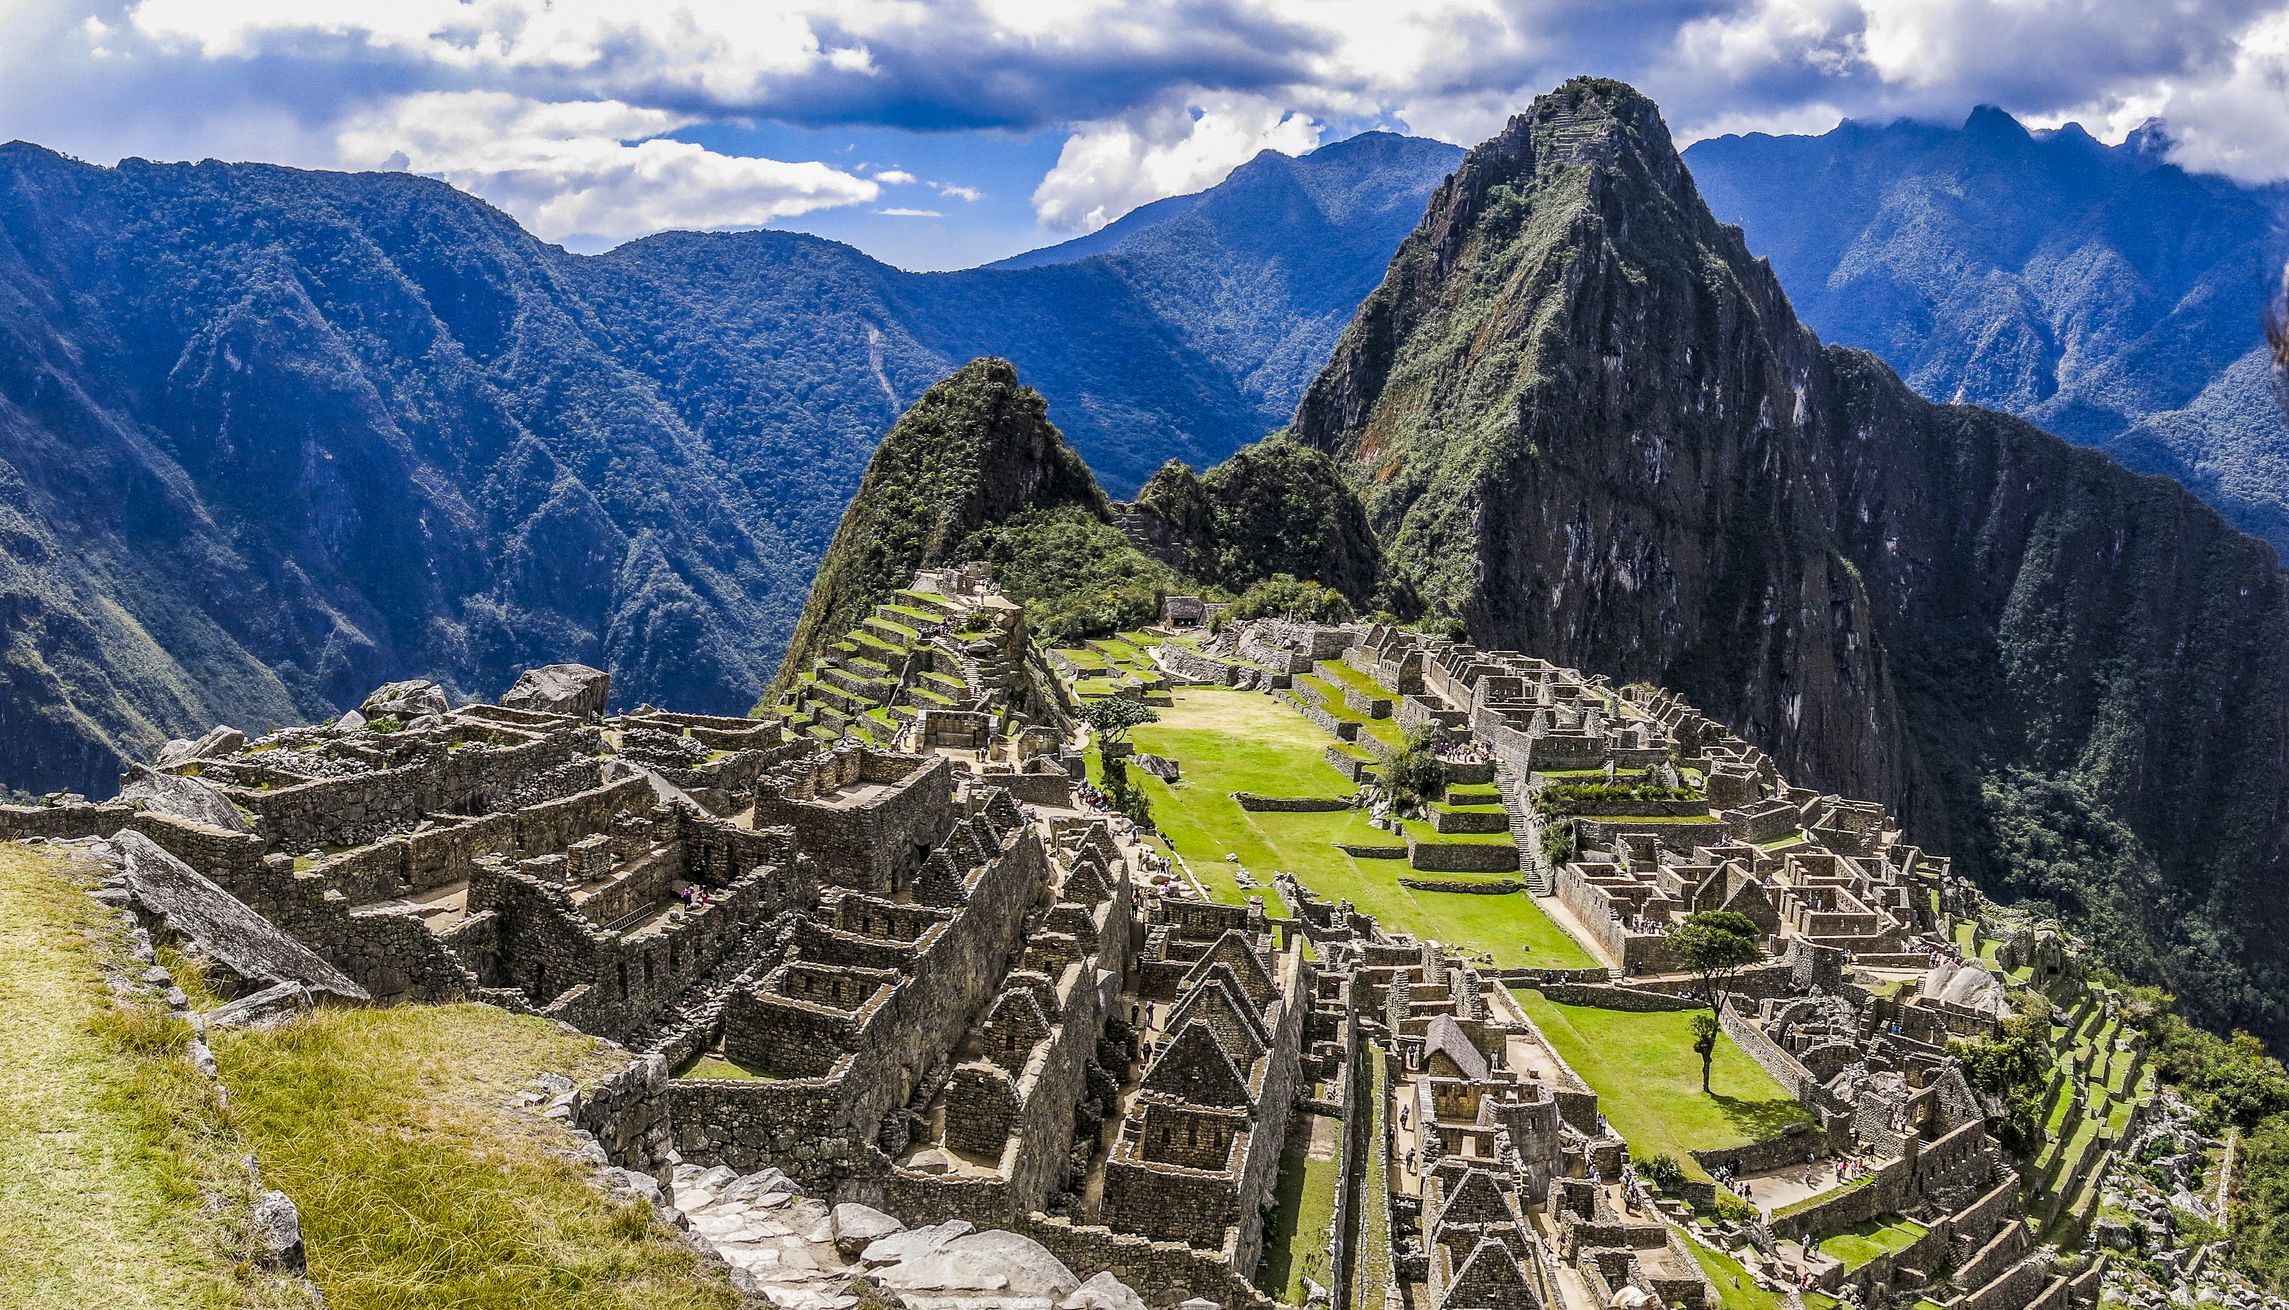 The archeological site of Machu Picchu with mountains in the background